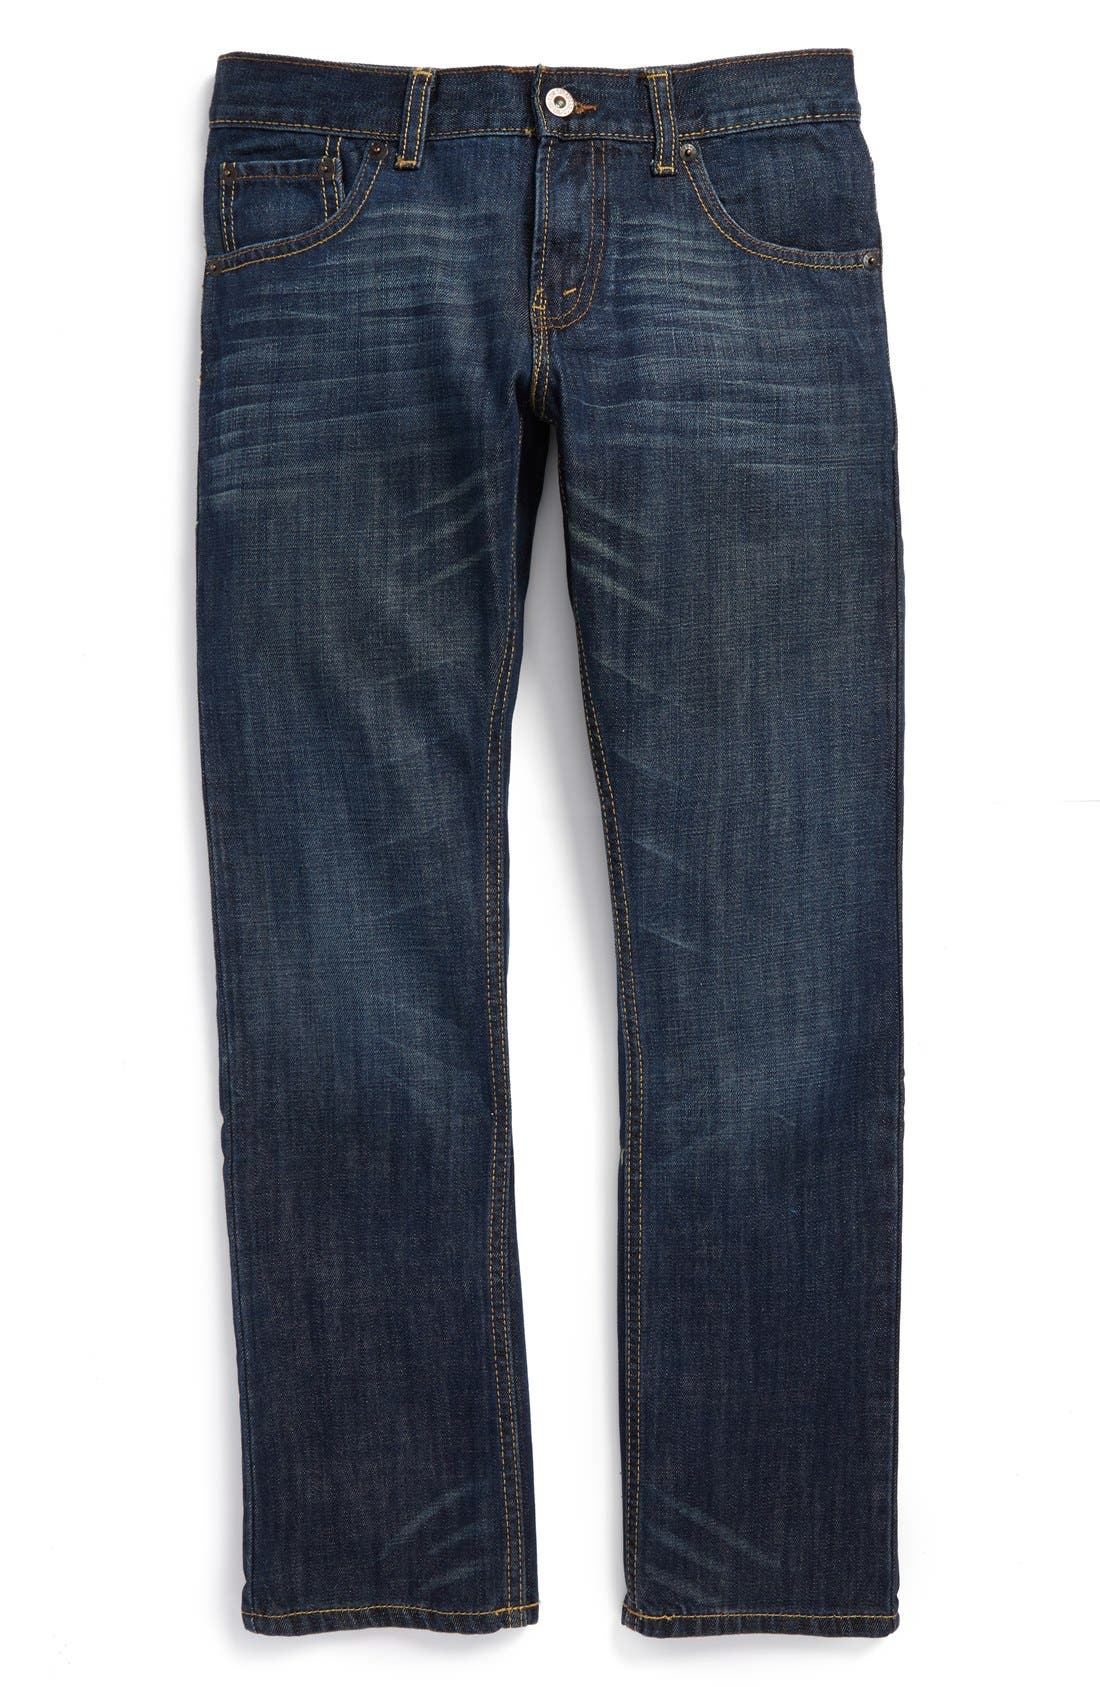 '513<sup>™</sup>' Slim Straight Jeans,                             Main thumbnail 1, color,                             435